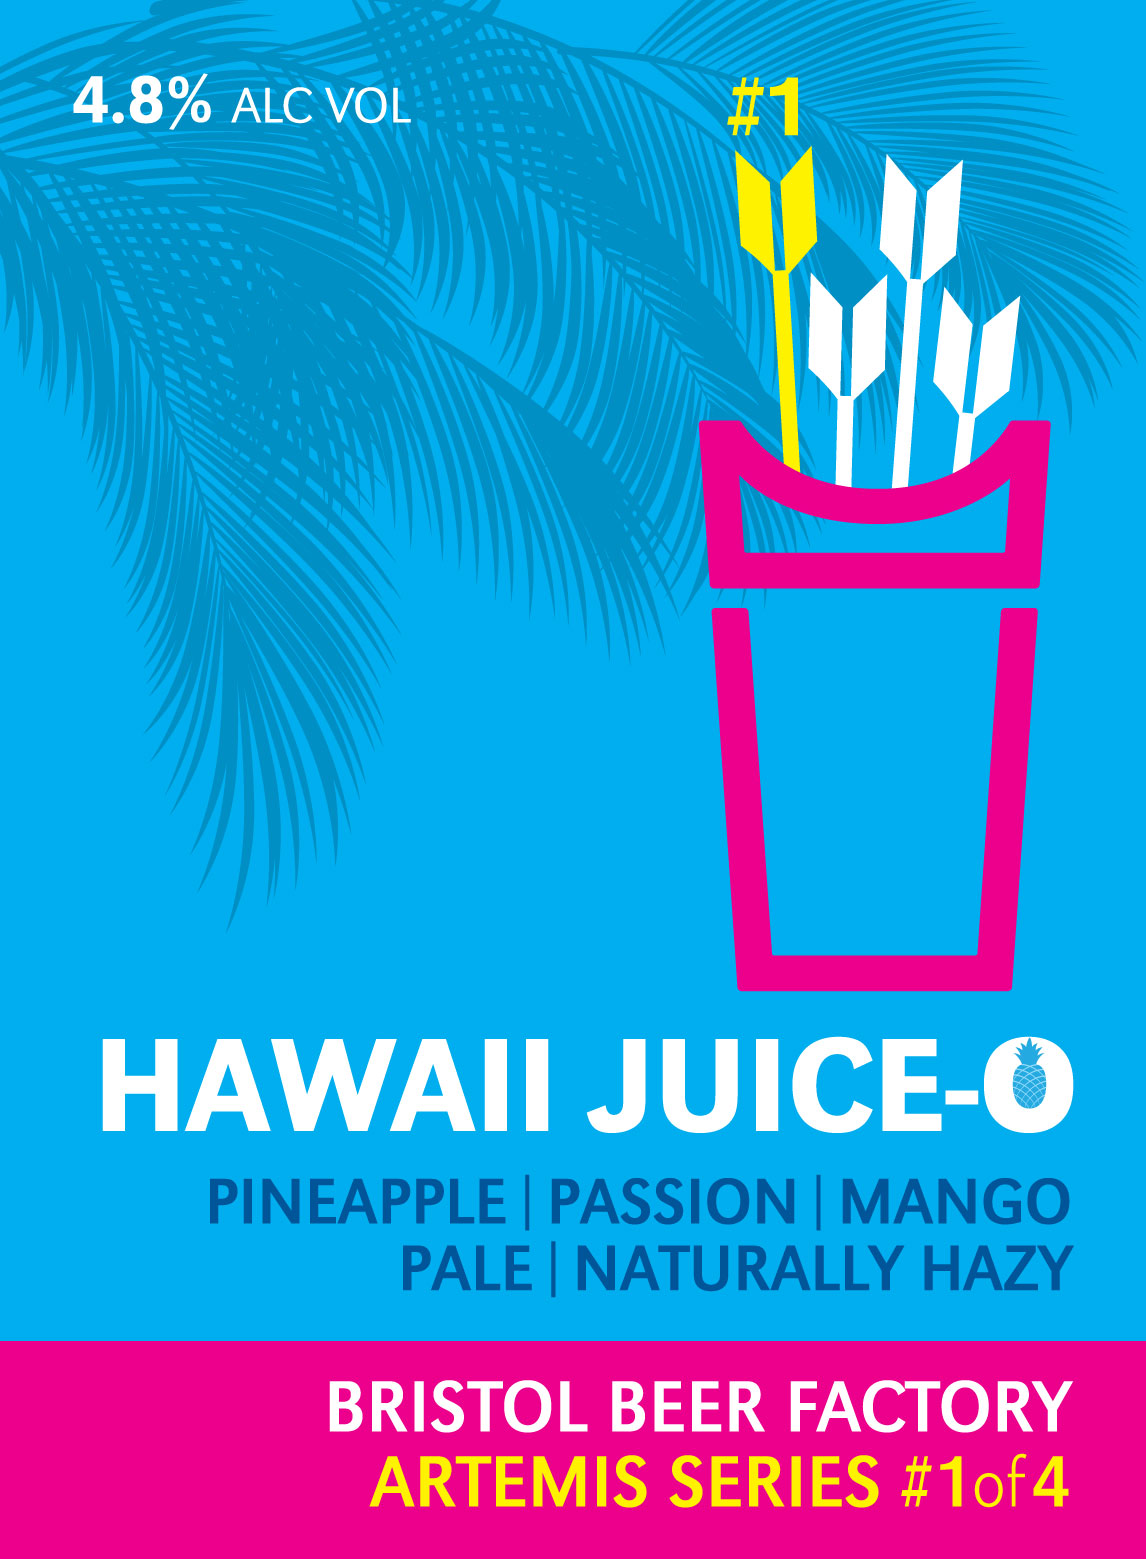 BBF-artemis-#1-HAWAII-JUICE-O.jpg